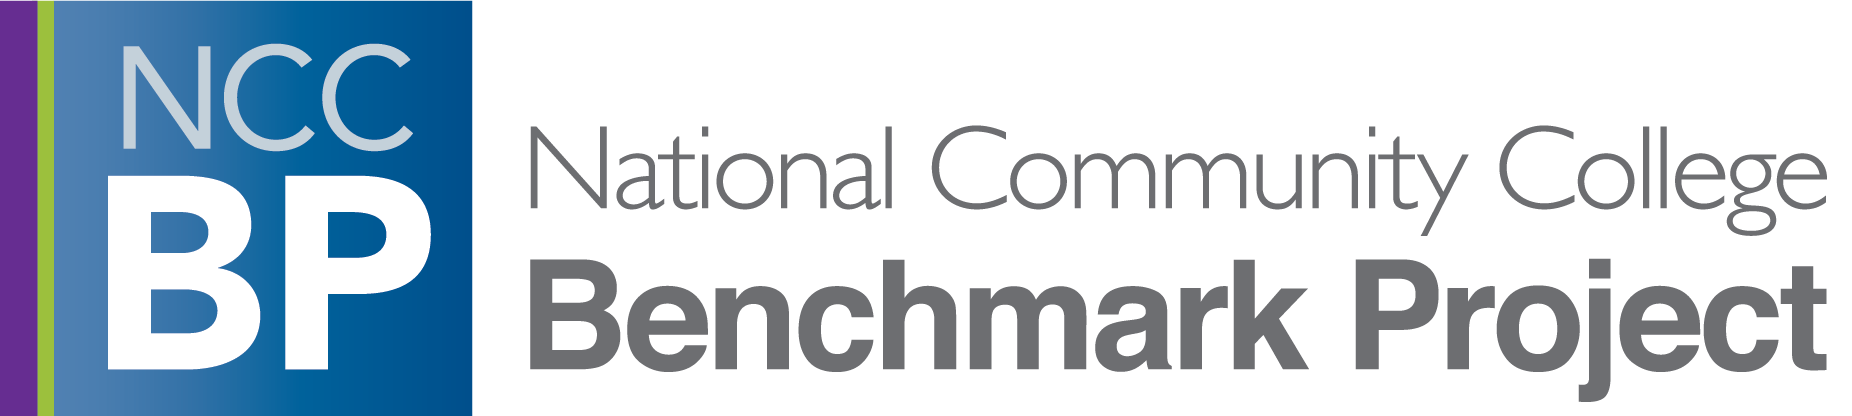 National Community College Benchmark Project